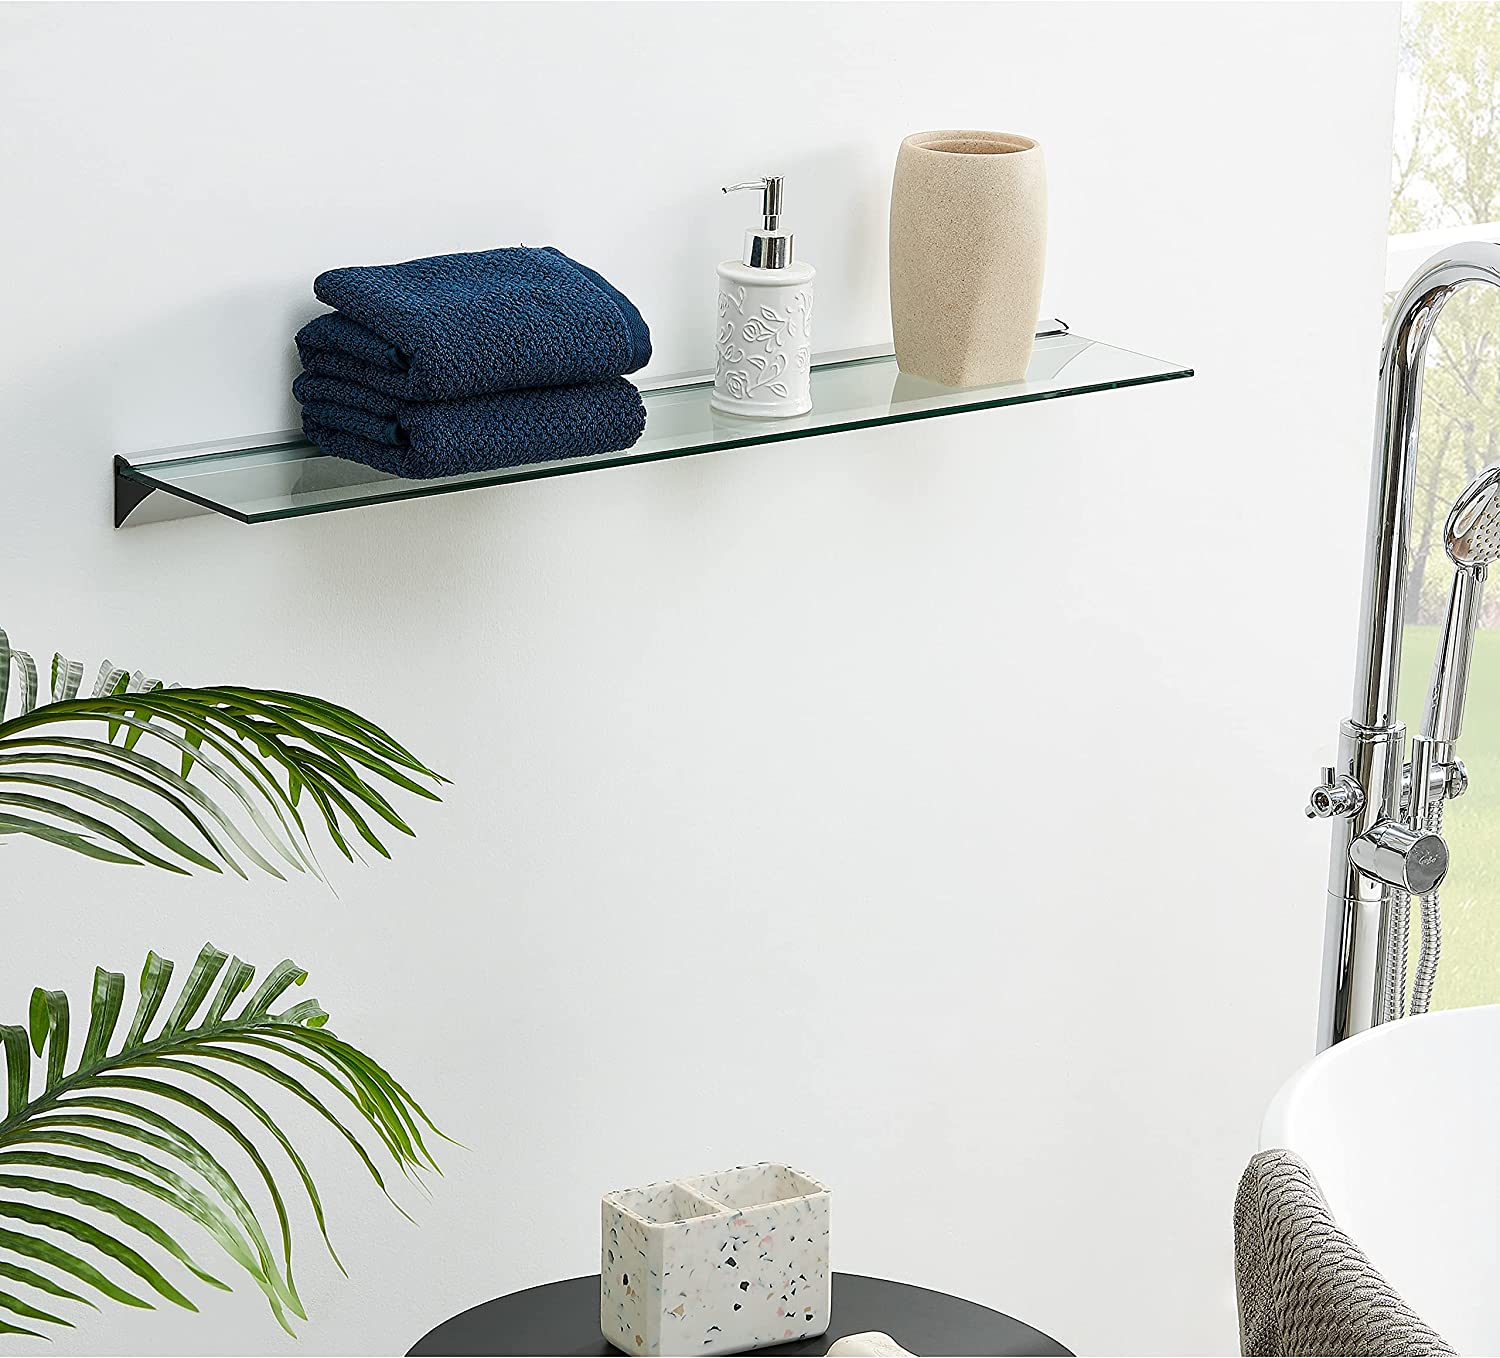 Unknown1 32 in Modern Clear Glass Shelf On Floating Max 74% OFF Contempo Super-cheap Bar